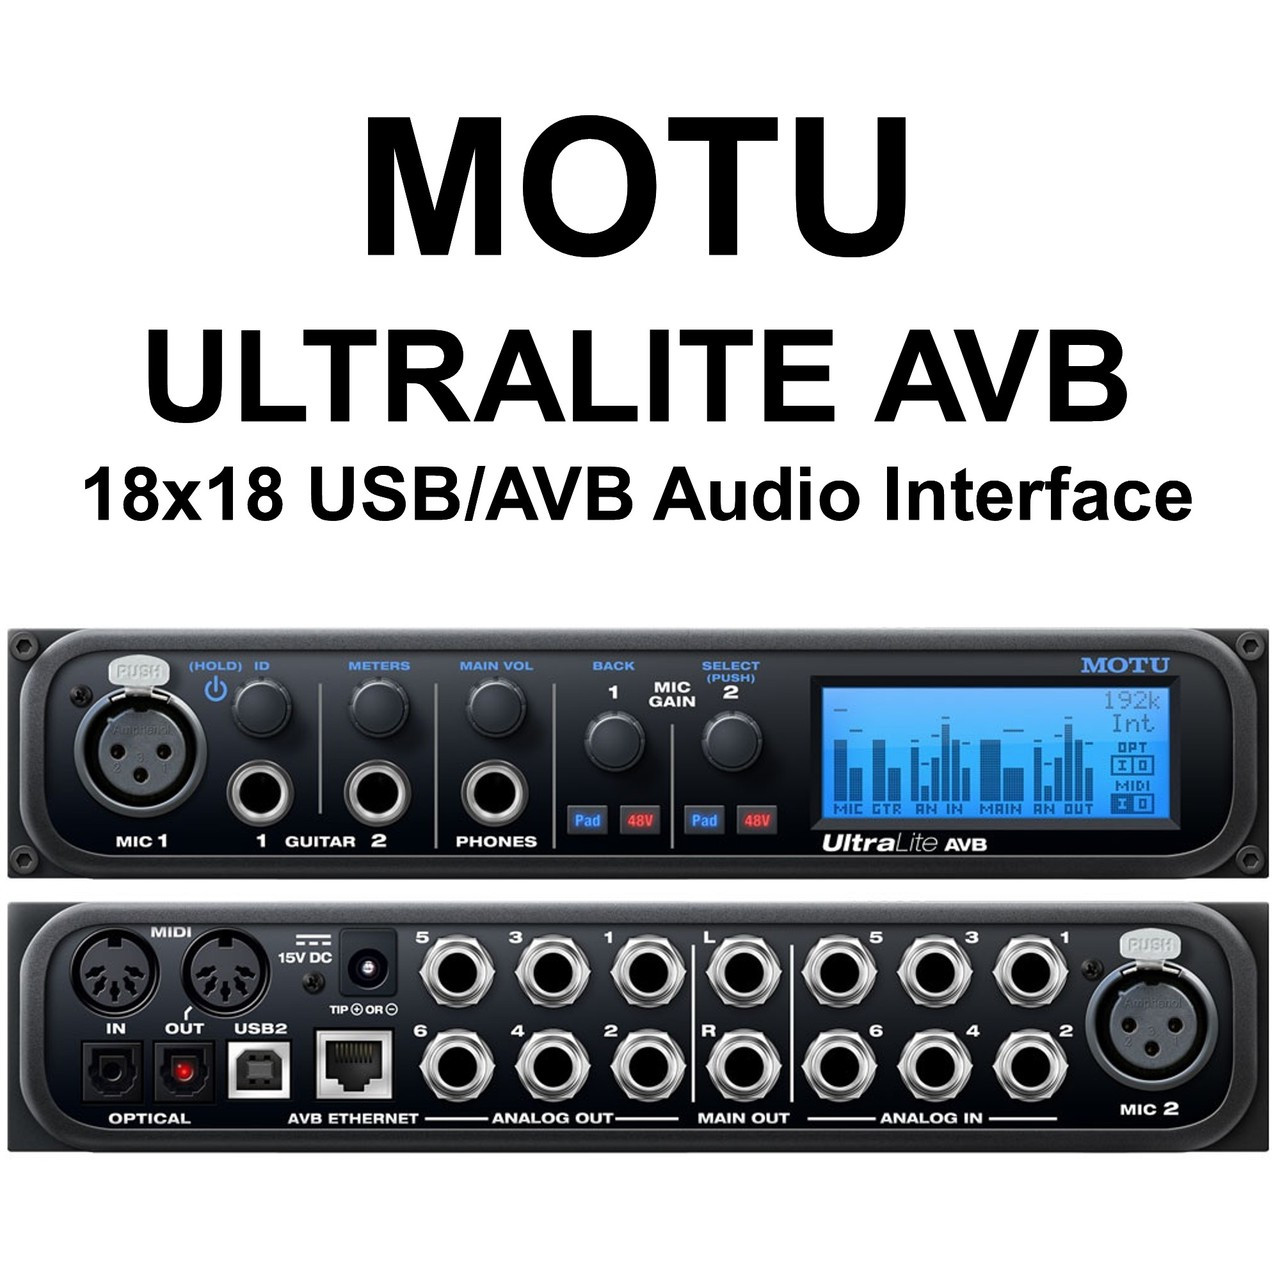 motu ultralite avb 18x18 compact ethernet usb audio interface 25 instant coupon use promo code. Black Bedroom Furniture Sets. Home Design Ideas